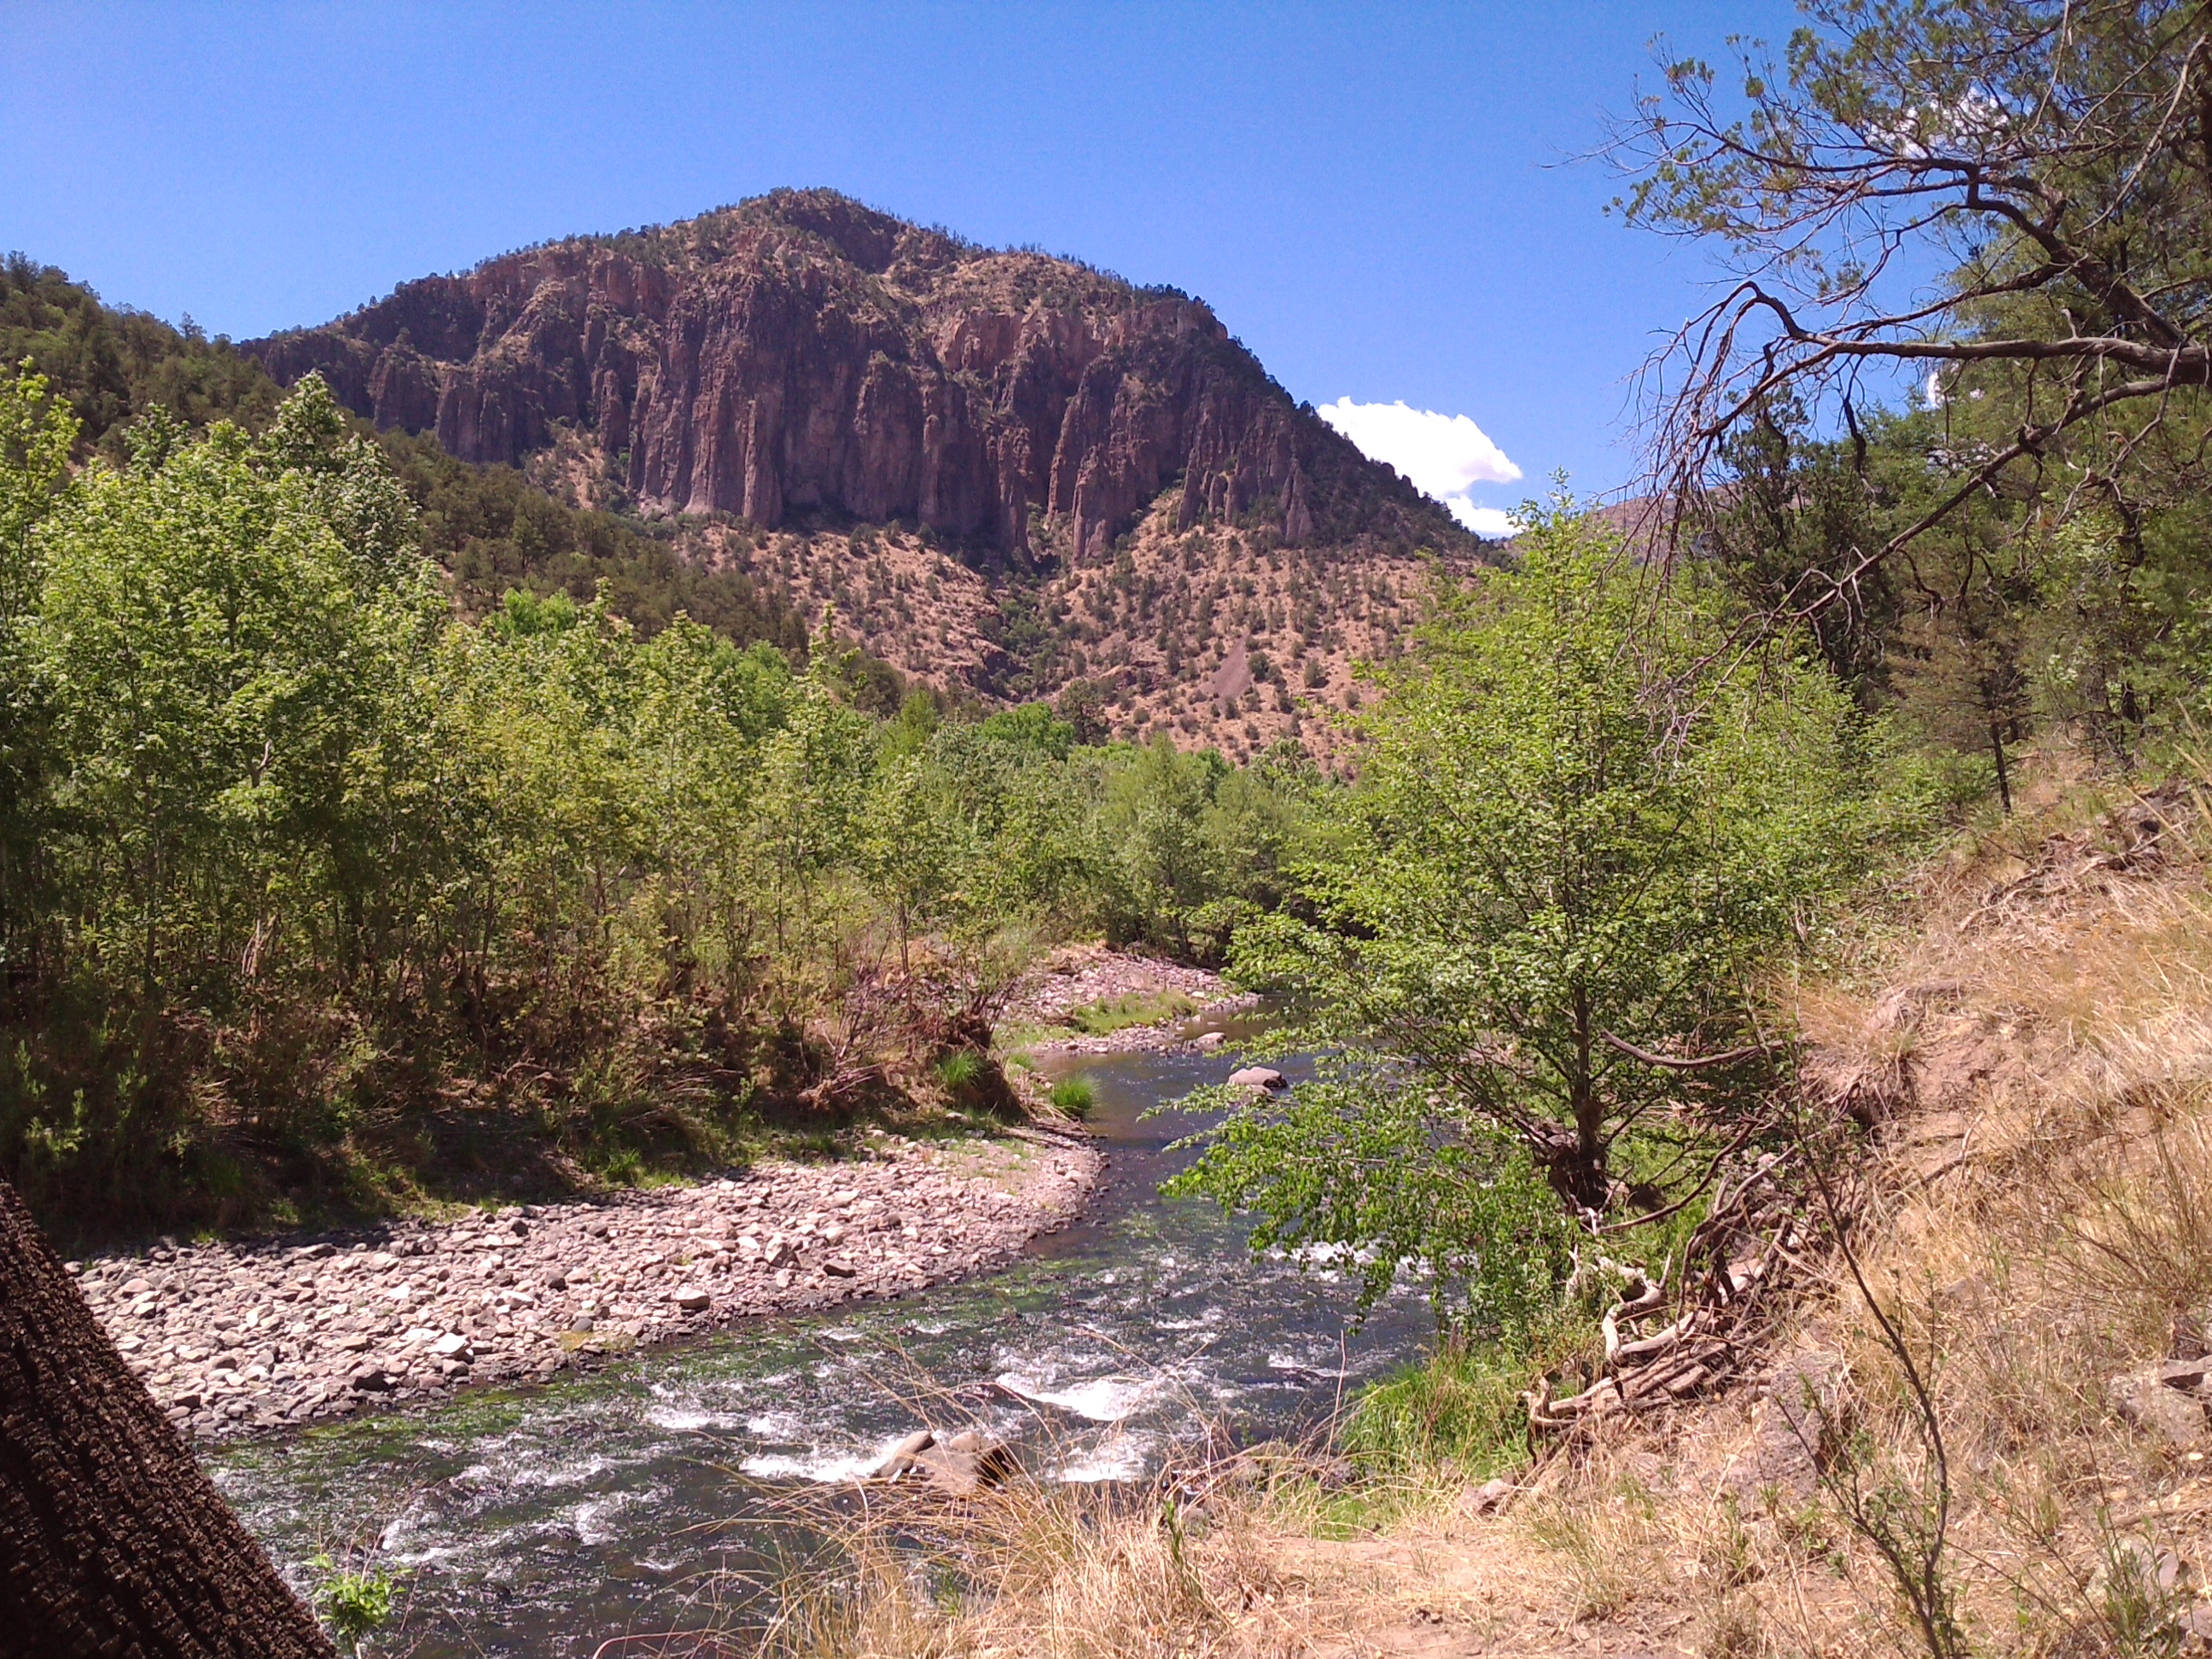 Let's push for Wild and Scenic Gila